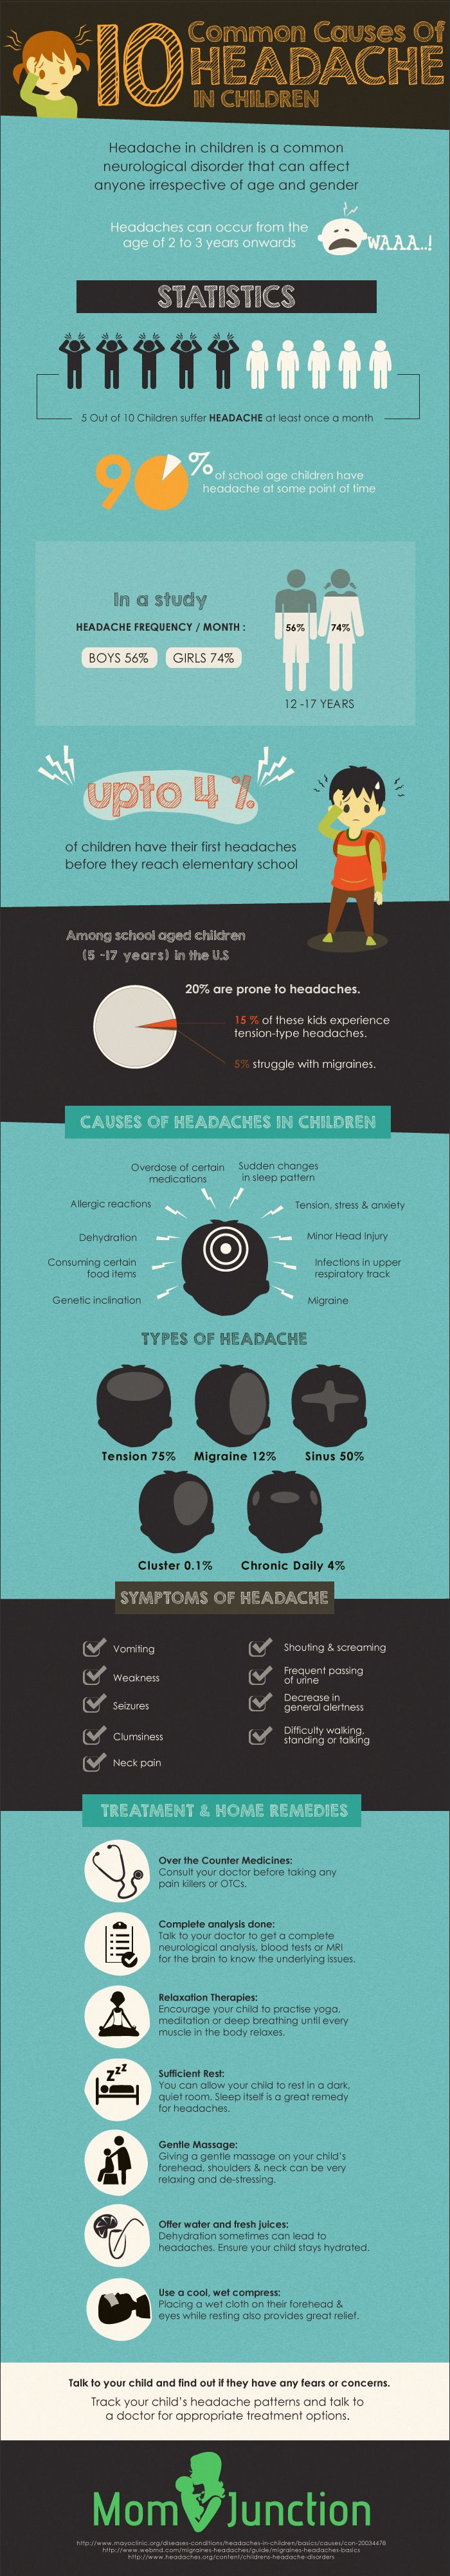 Headaches in Children Causes And Symptoms Headache